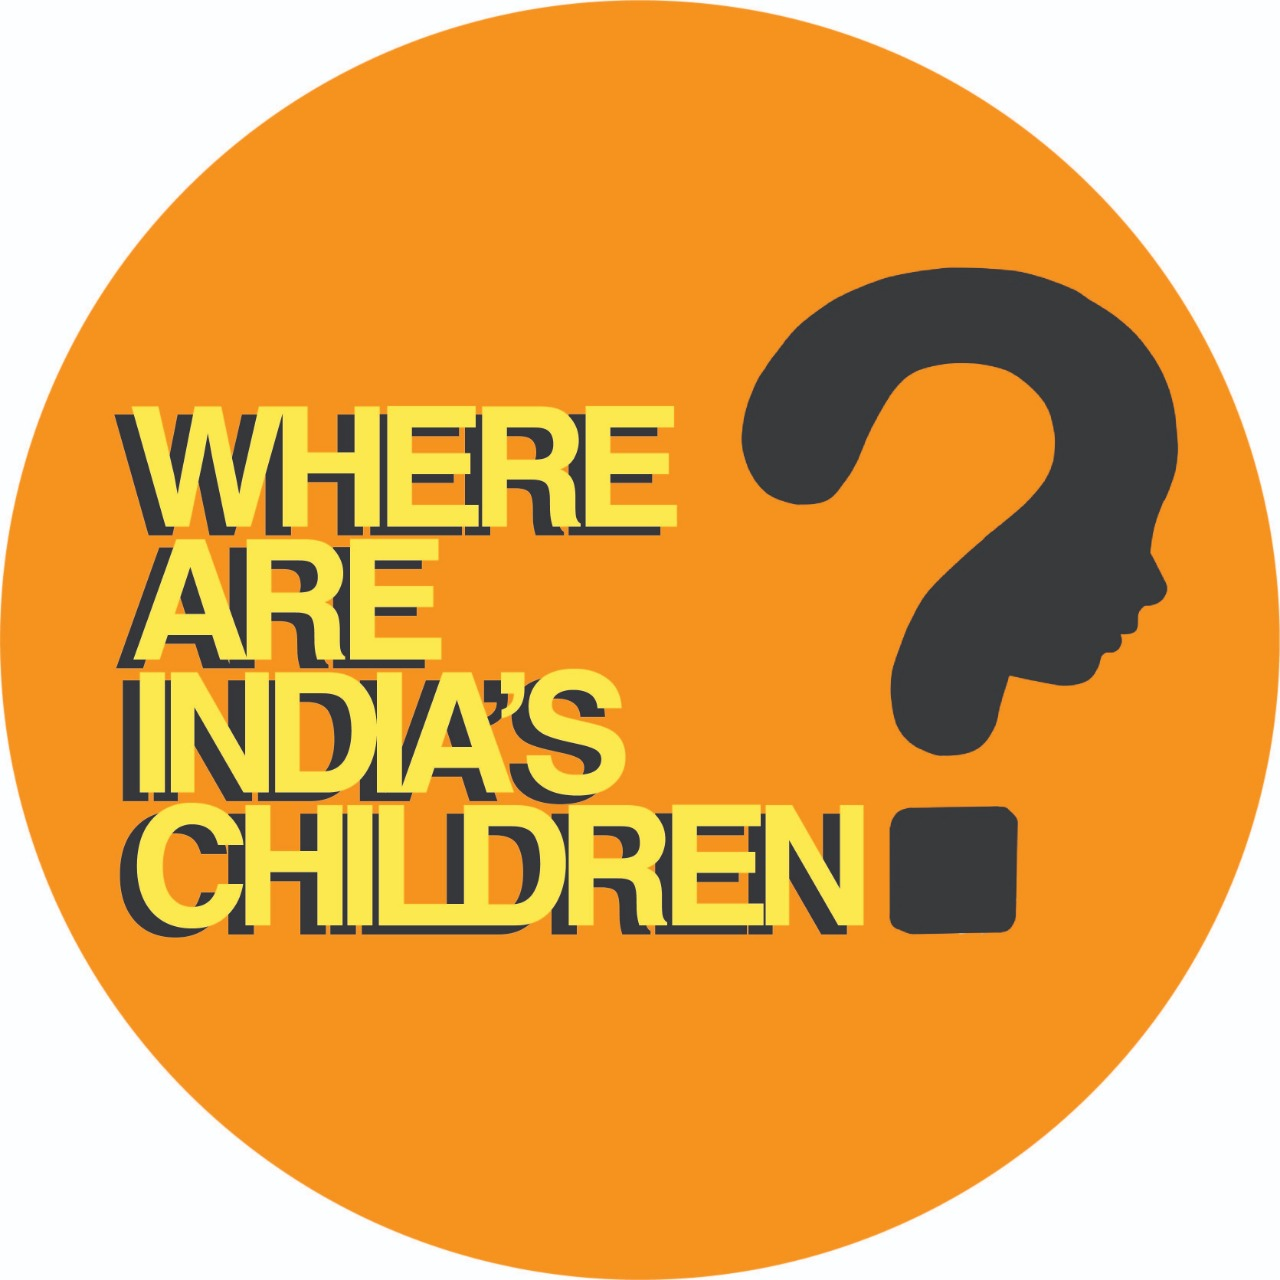 Let's raise our voice together for India's voiceless children